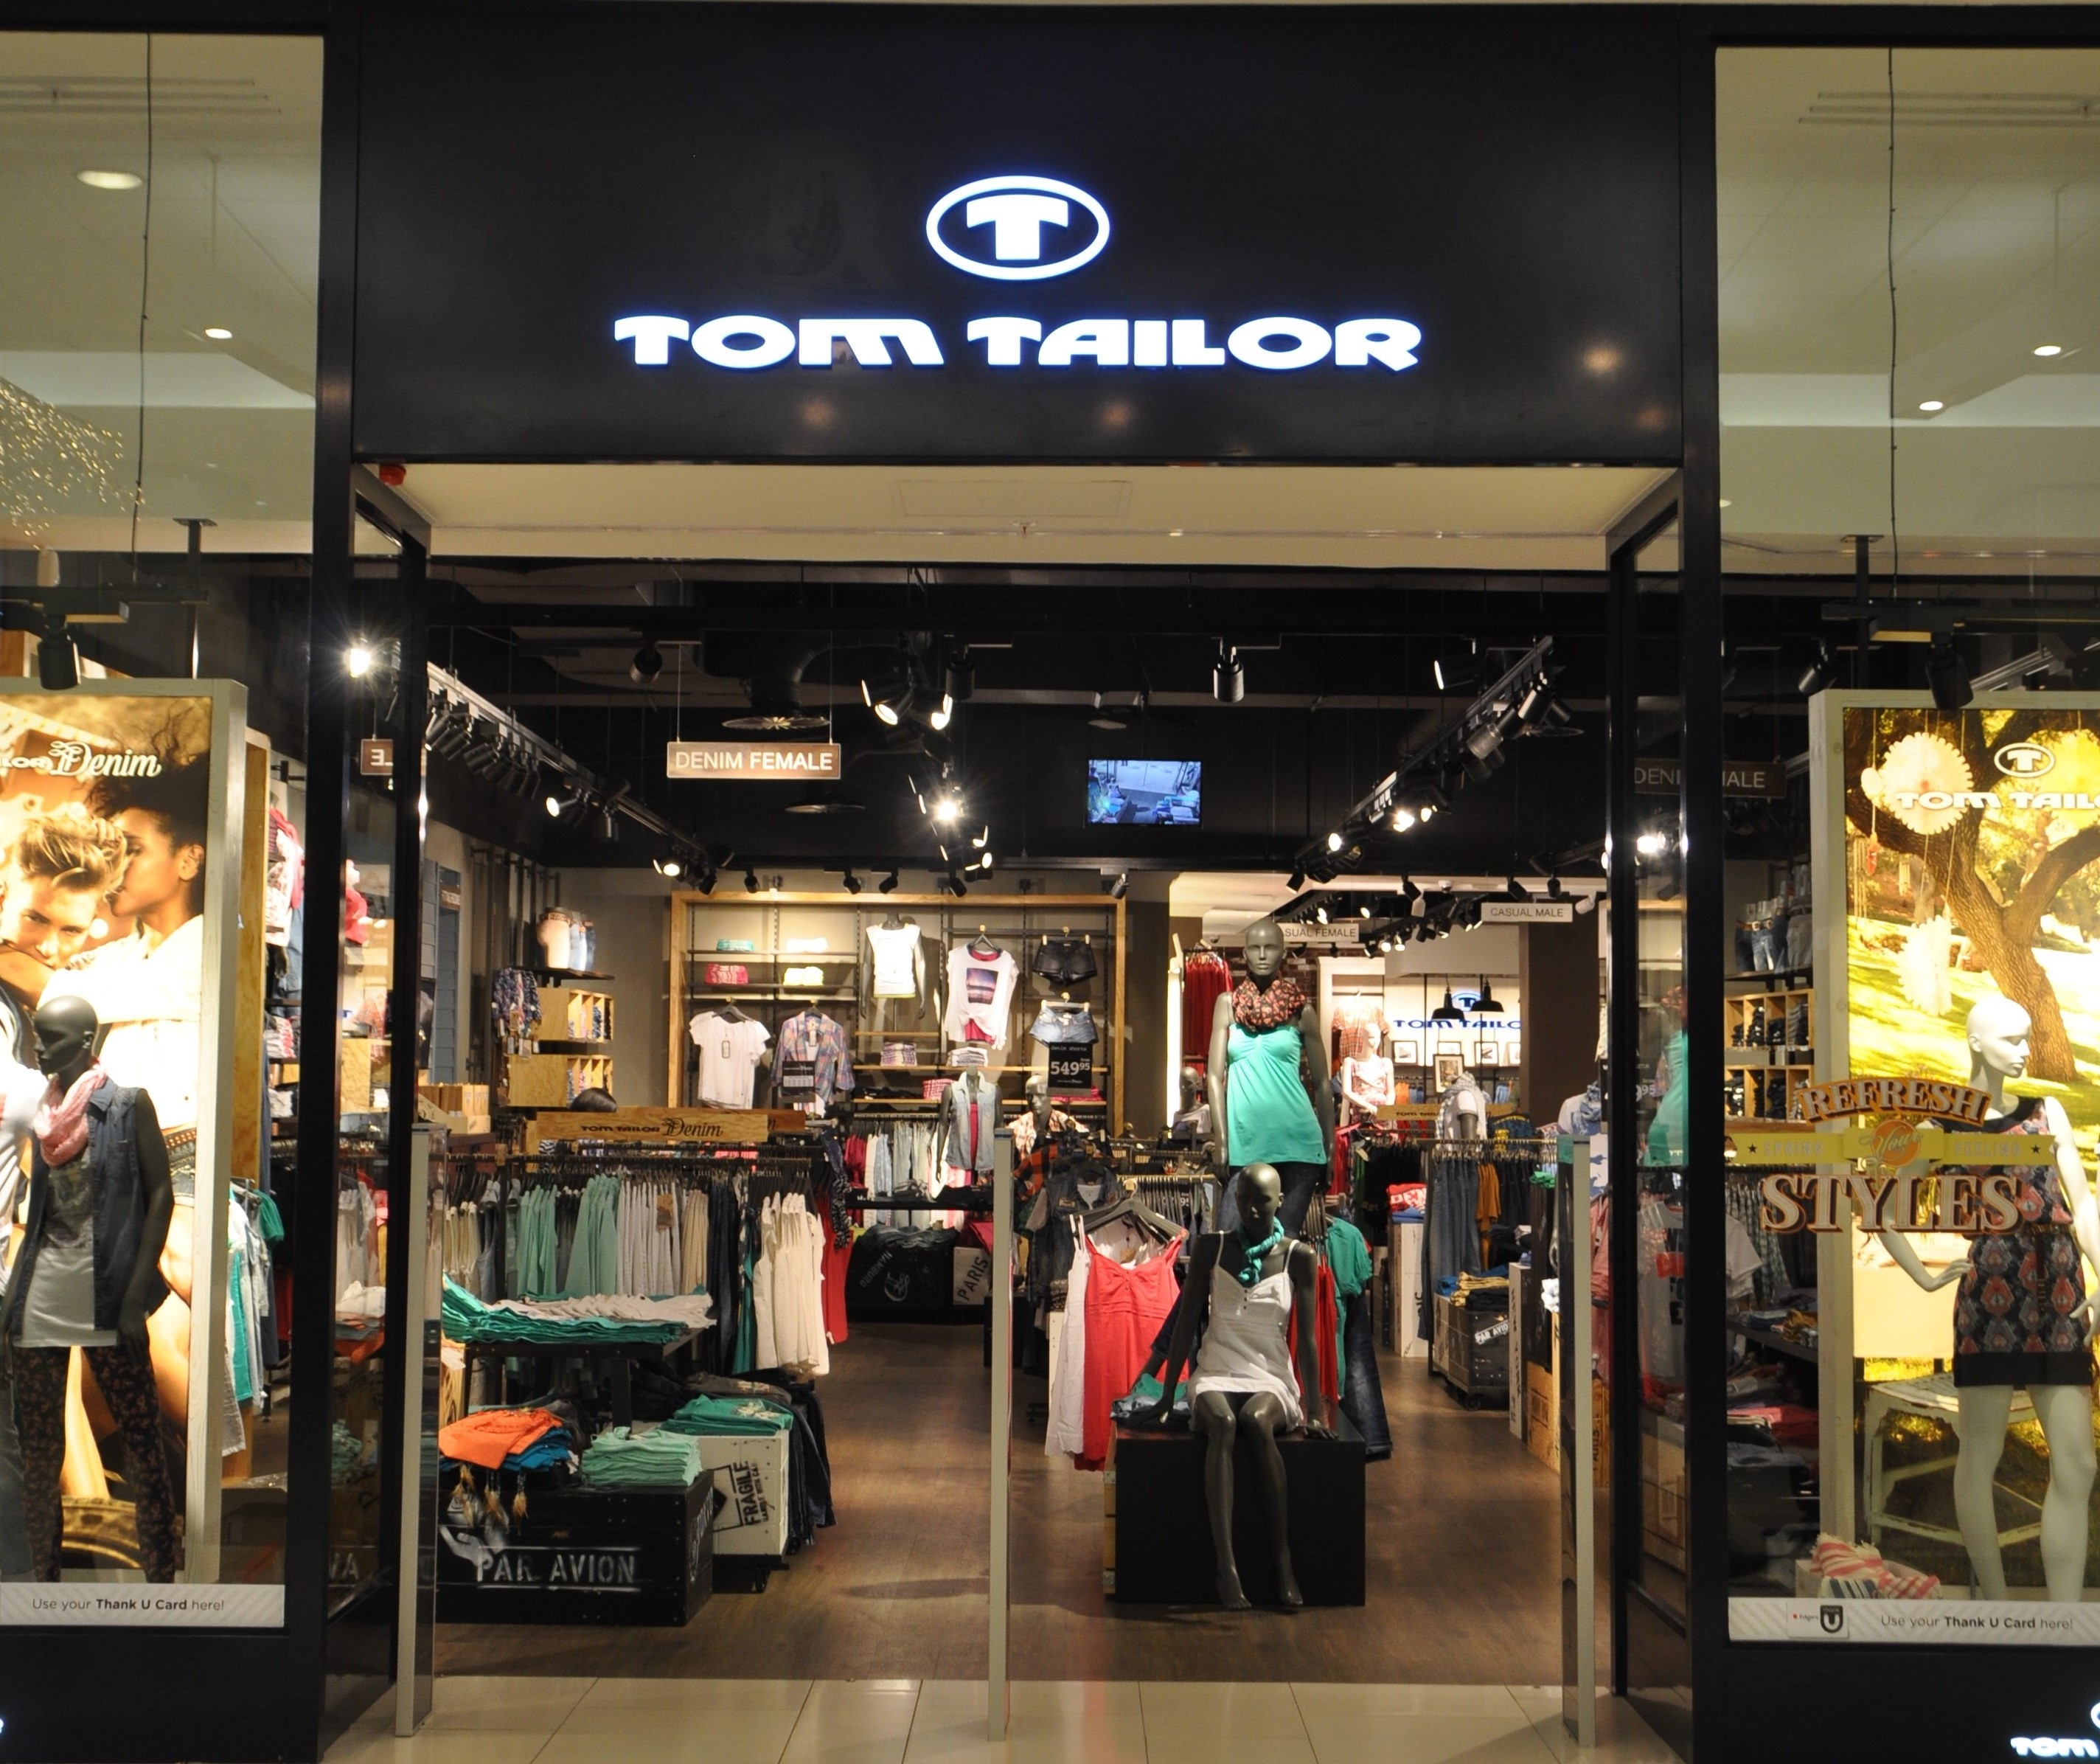 Tom Teiler In Store Audio And Digital Signage Solution In Tom Tailor